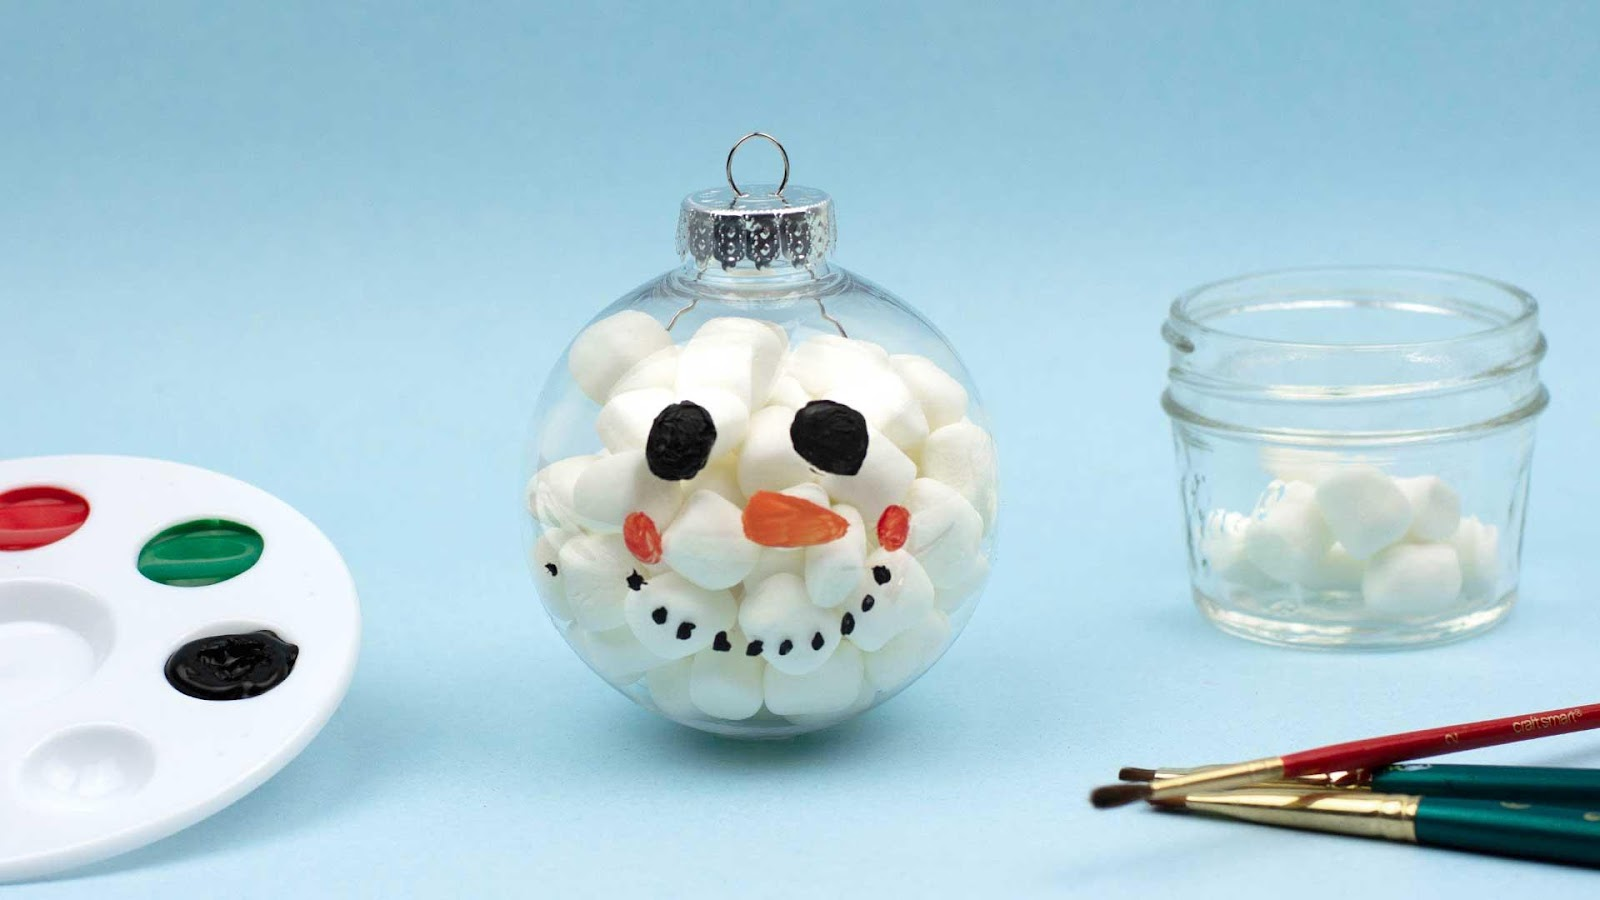 Marshmallow Christmas Ornament DIY